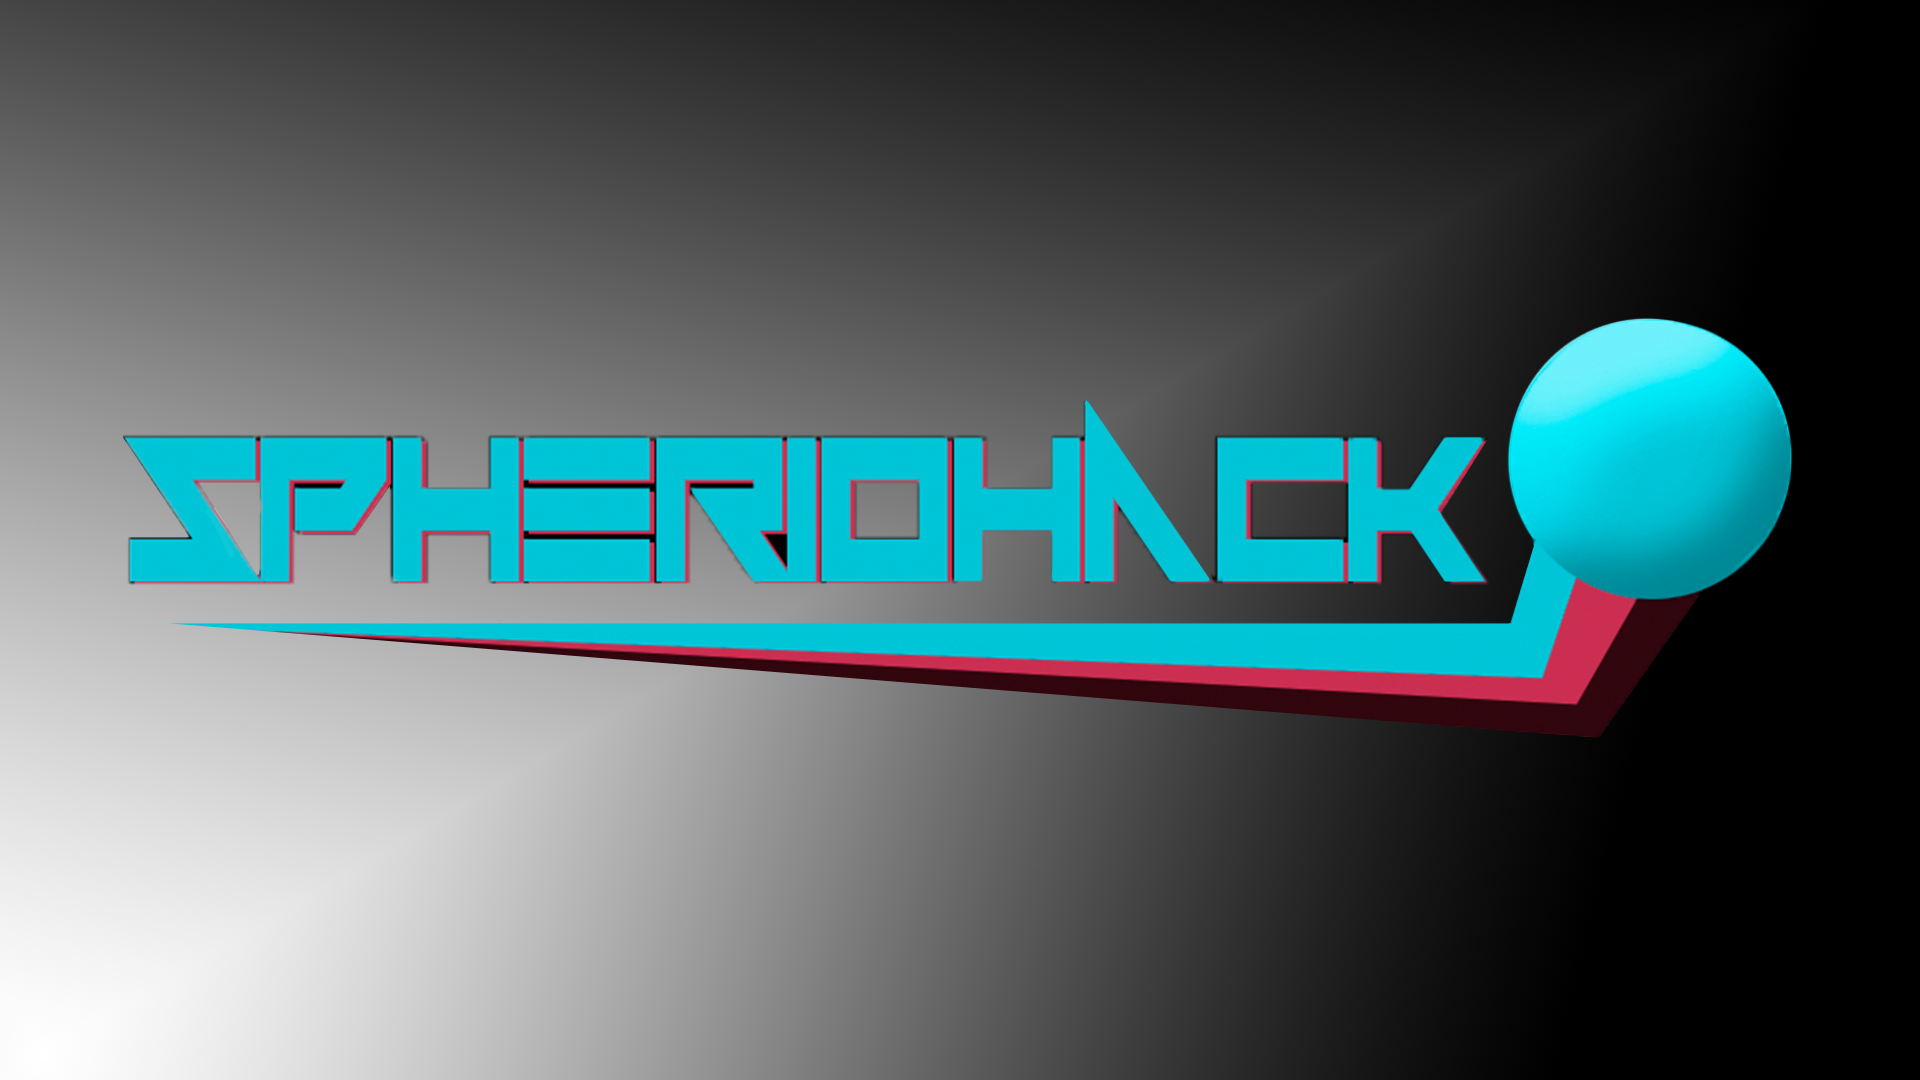 The logo for Spheriohack.